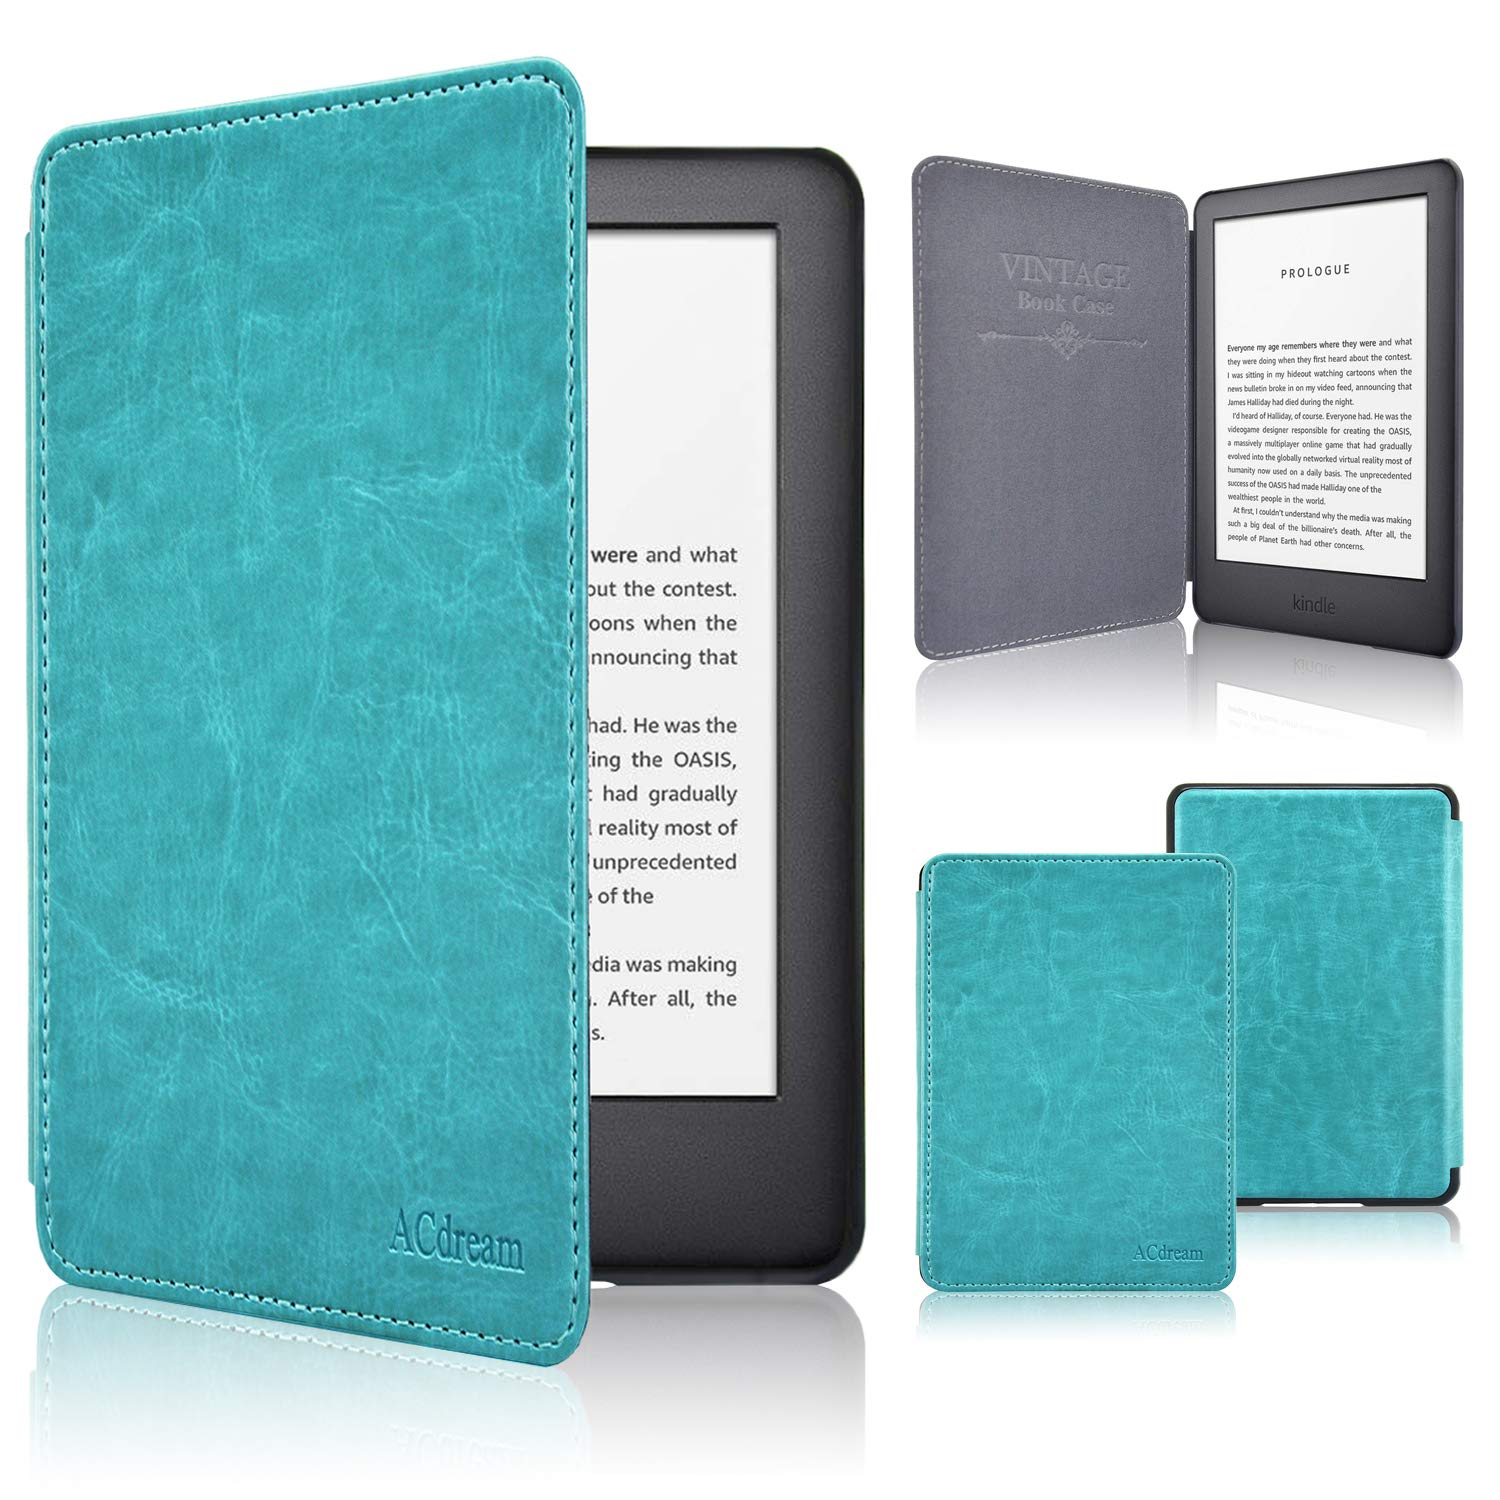 ACcolor New Kindle Oasis 2019